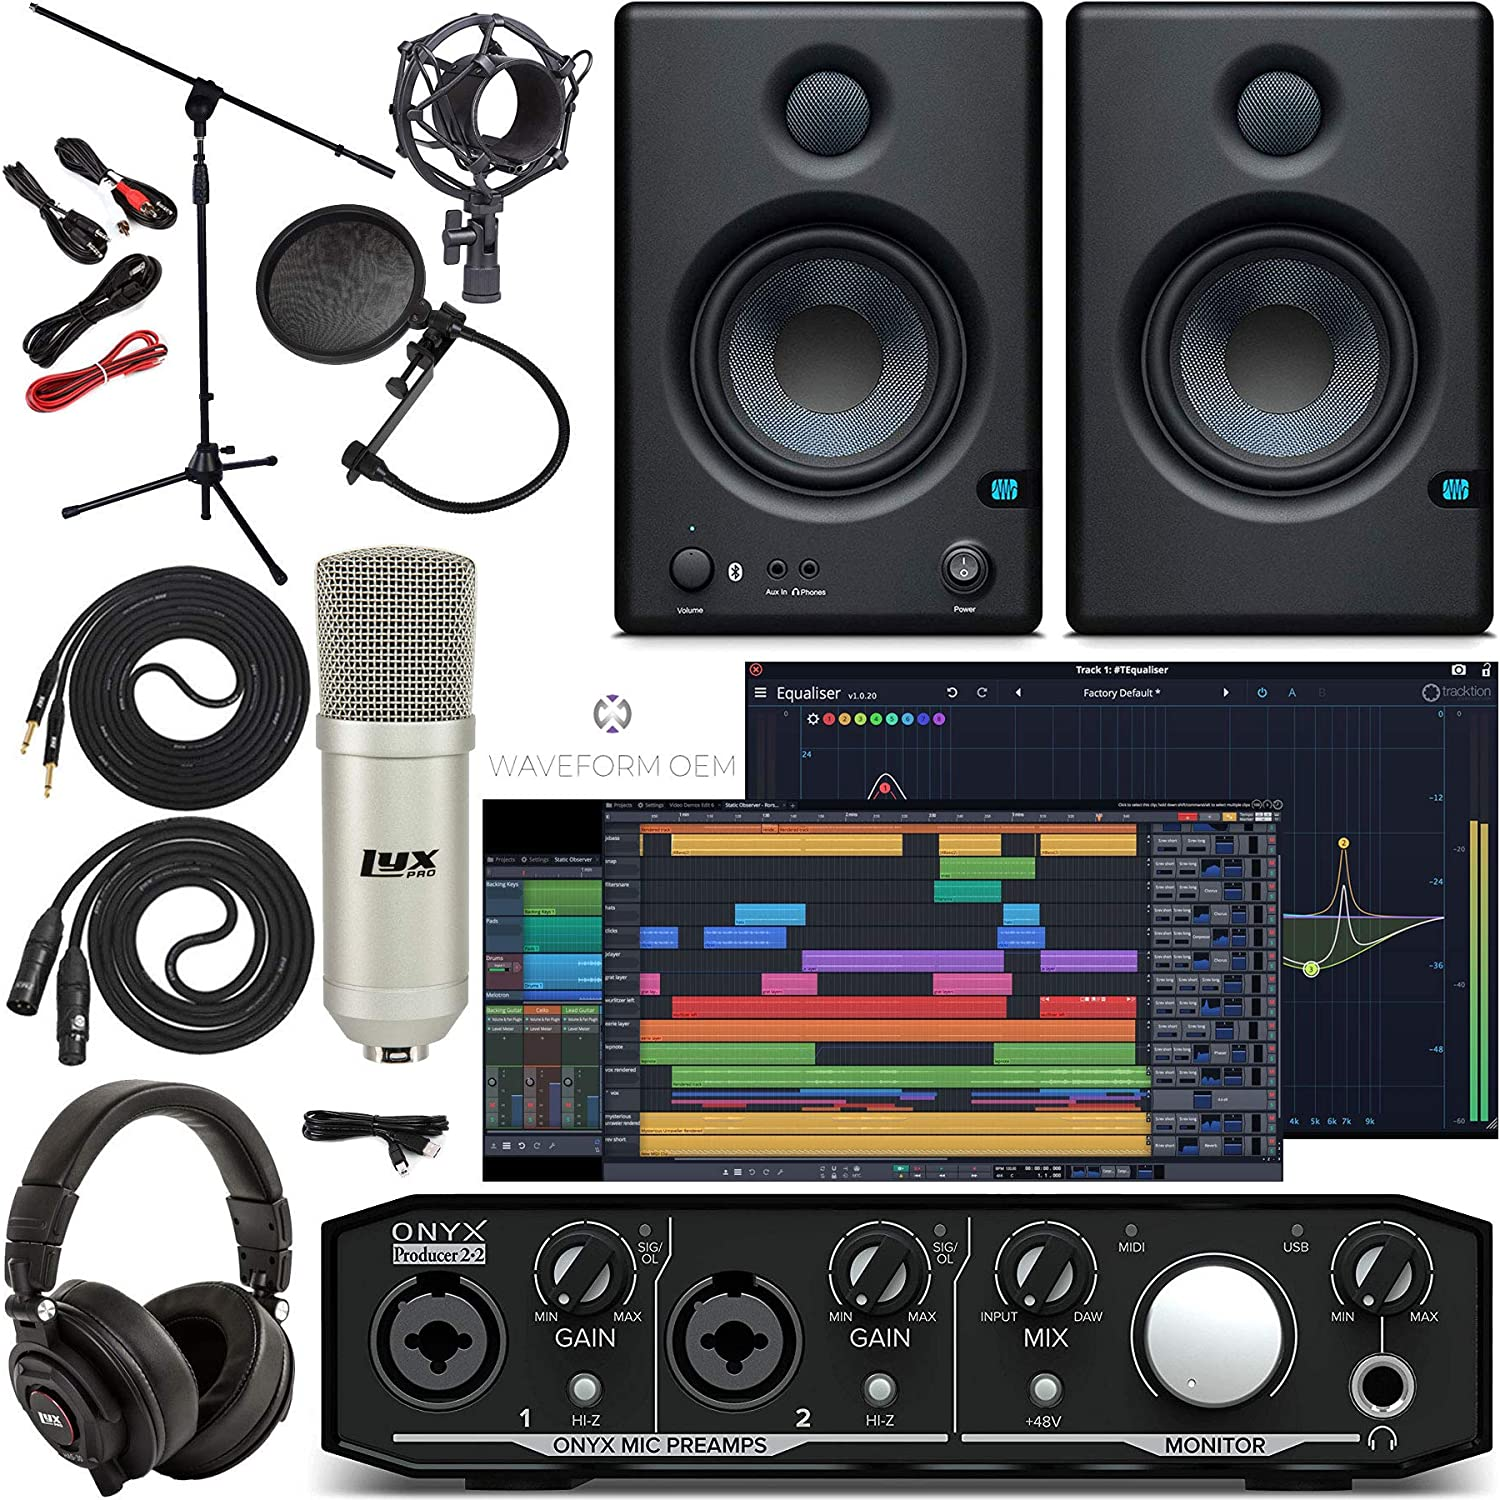 Mackie Onyx New products world's highest Trust quality popular Producer 2-2 Audio Midi Tools Pro interface Fir With